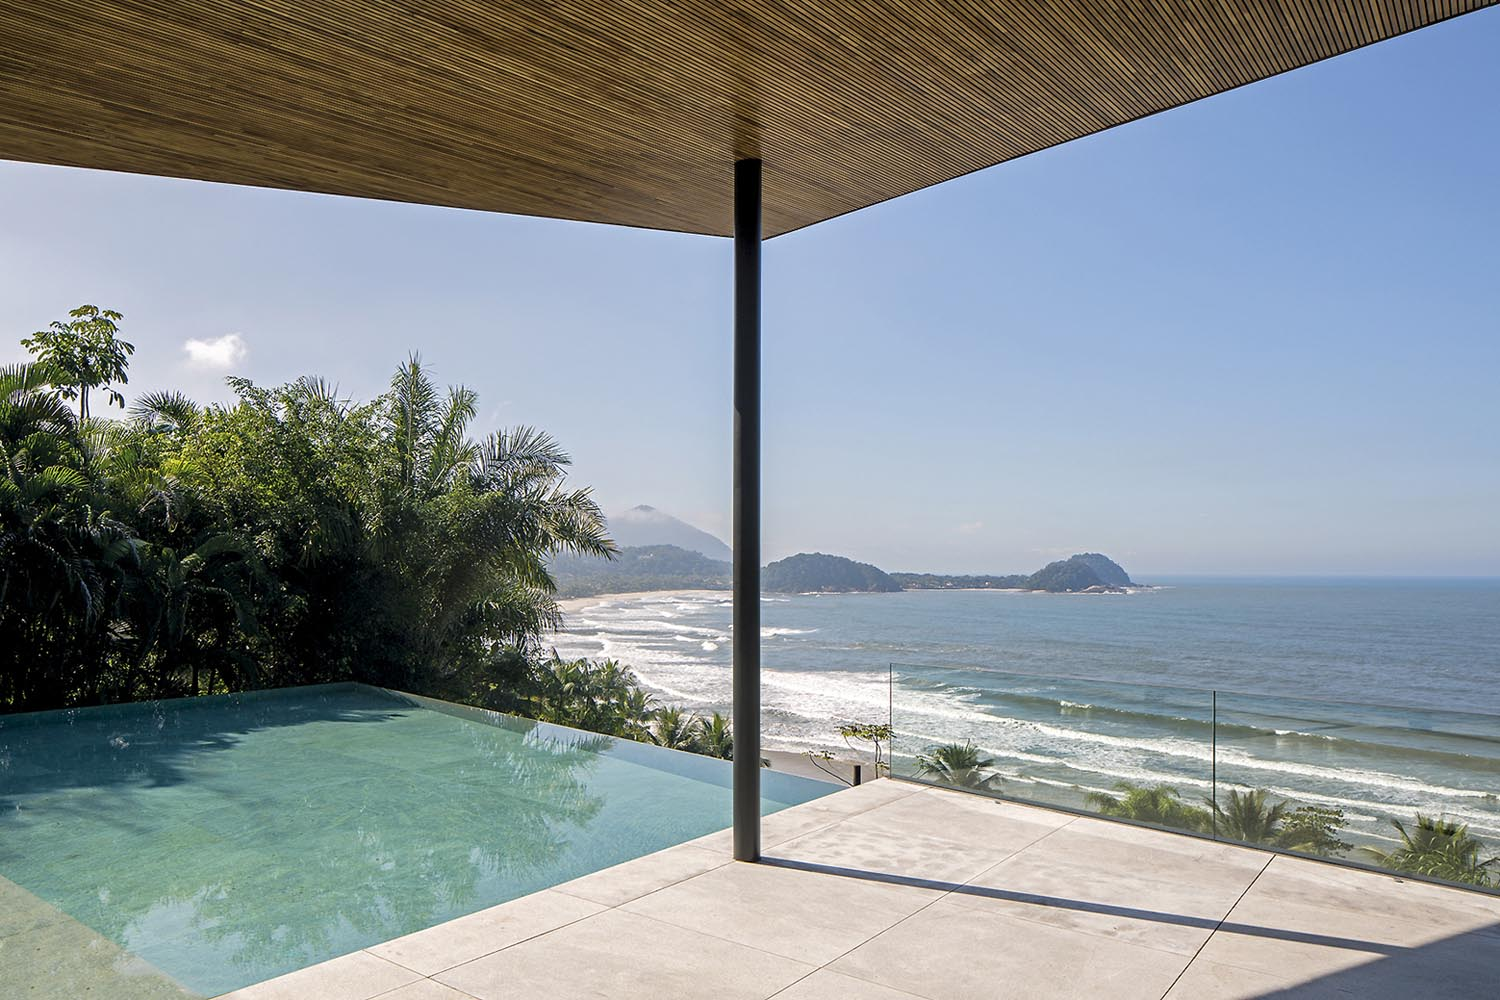 mm_Casa Delta design by Bernardes Arquitetura_06